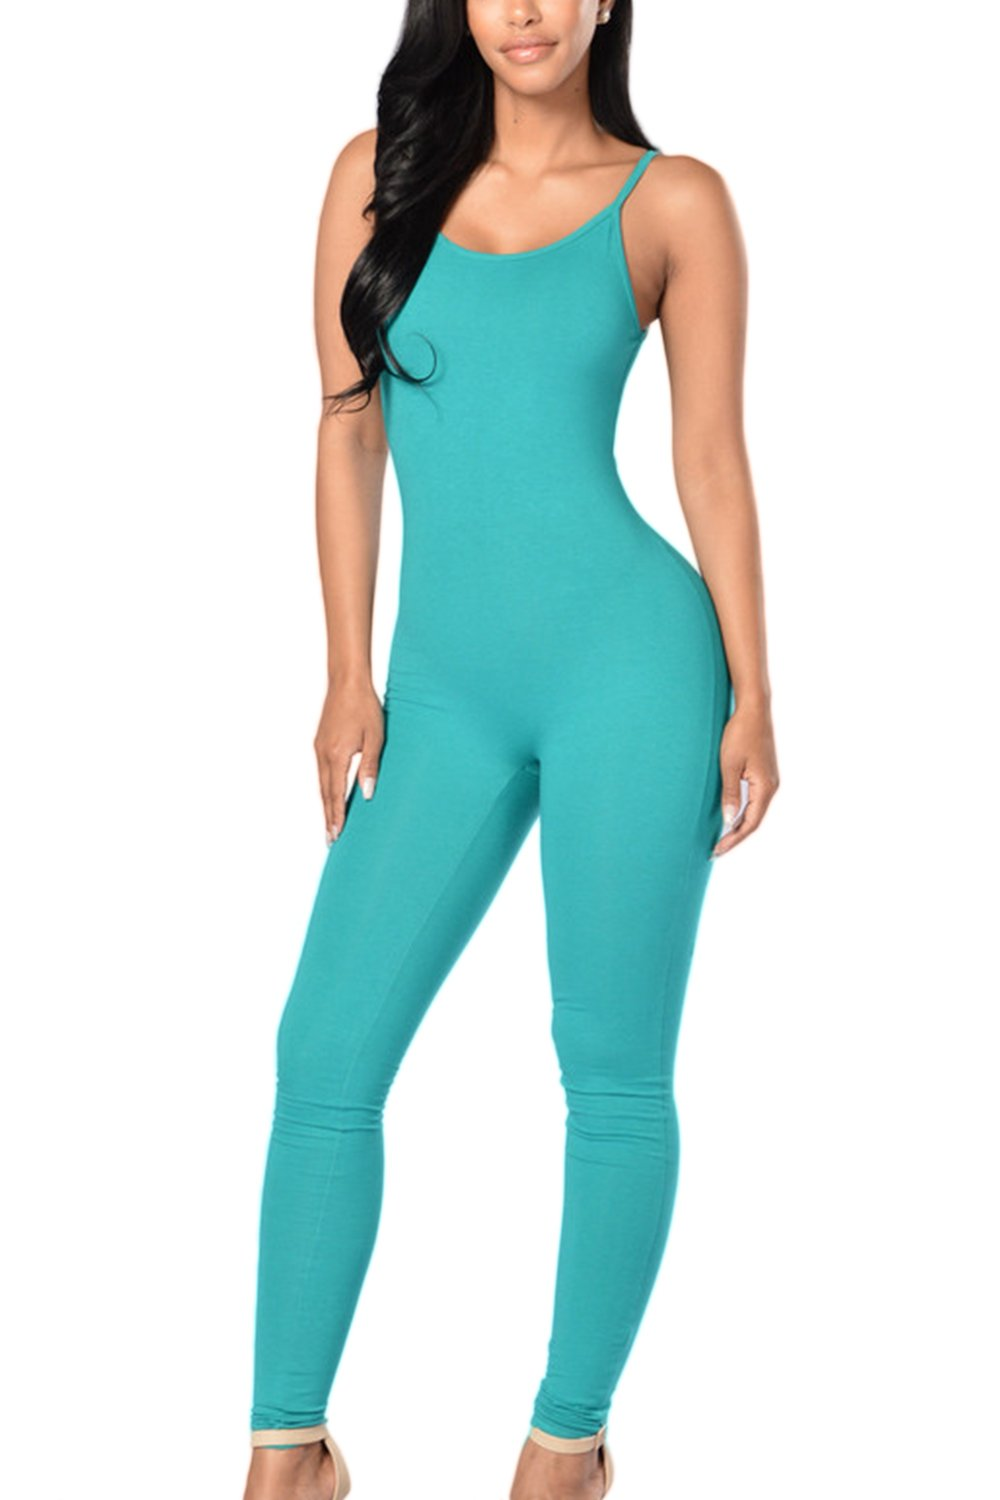 Zilcremo Women Casual Cami Slim Bodycon Full Length Bodysuits Jumpsuits CAFZ690